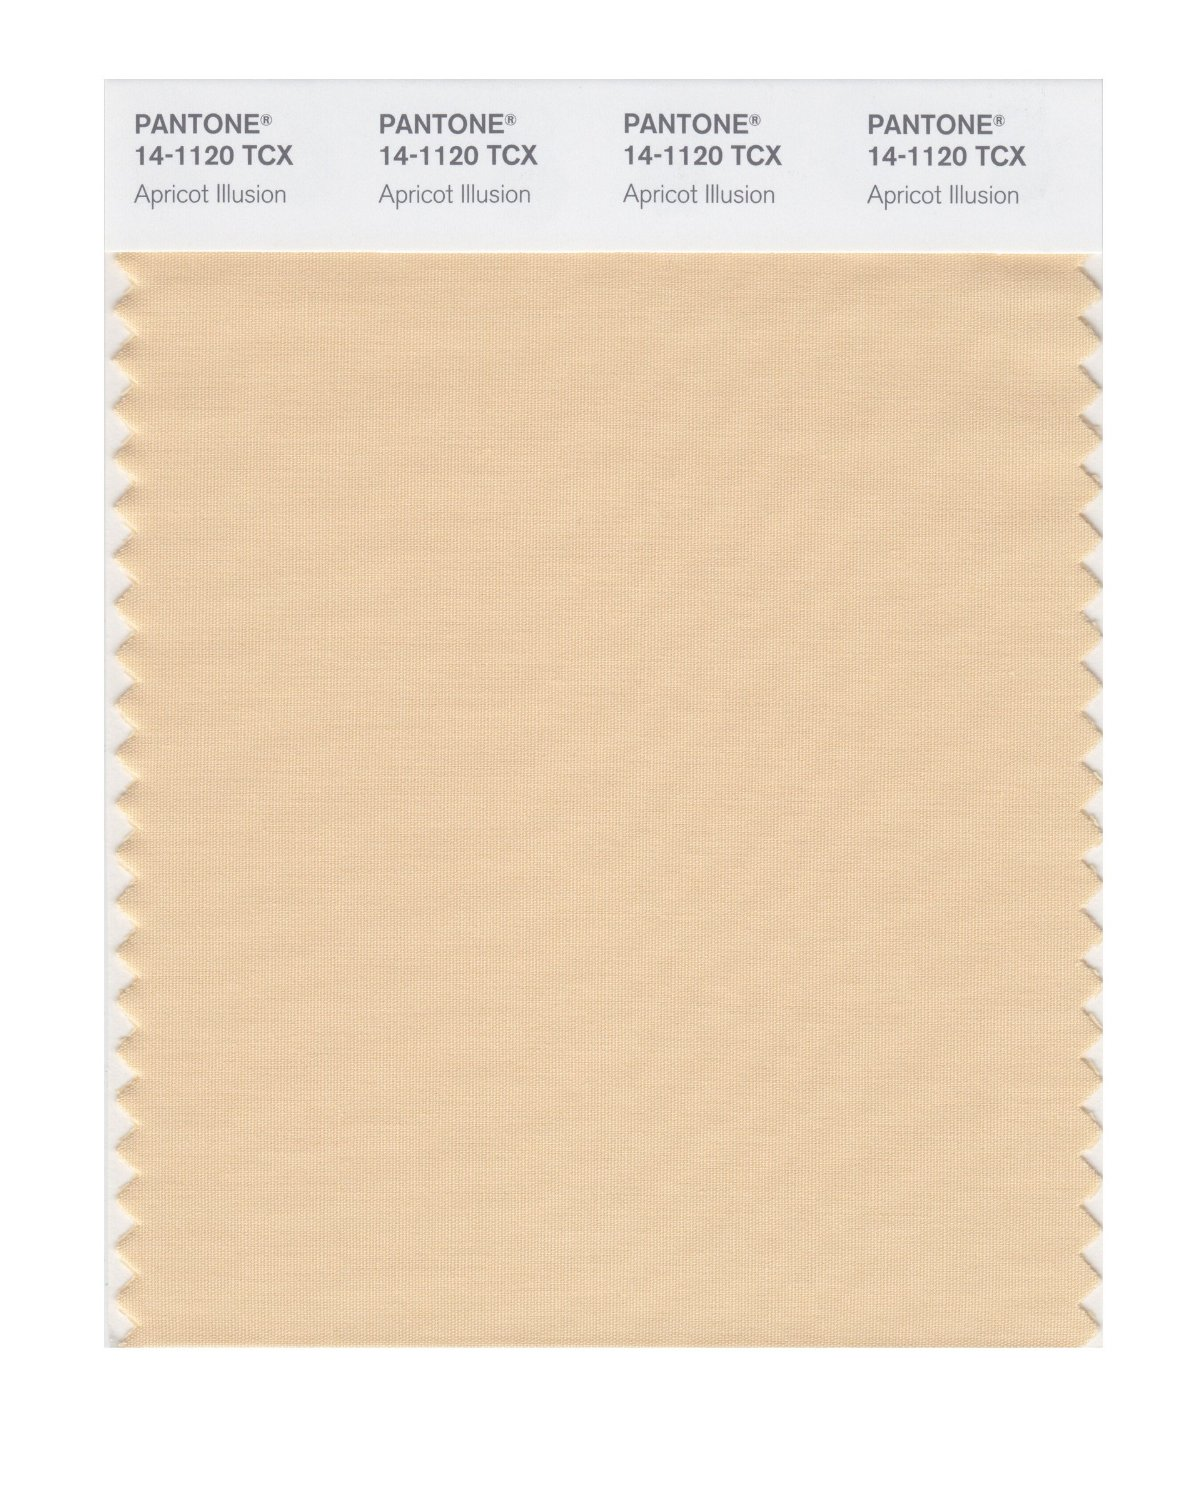 Pantone Smart Swatch 14-1120 Apricot Illusion